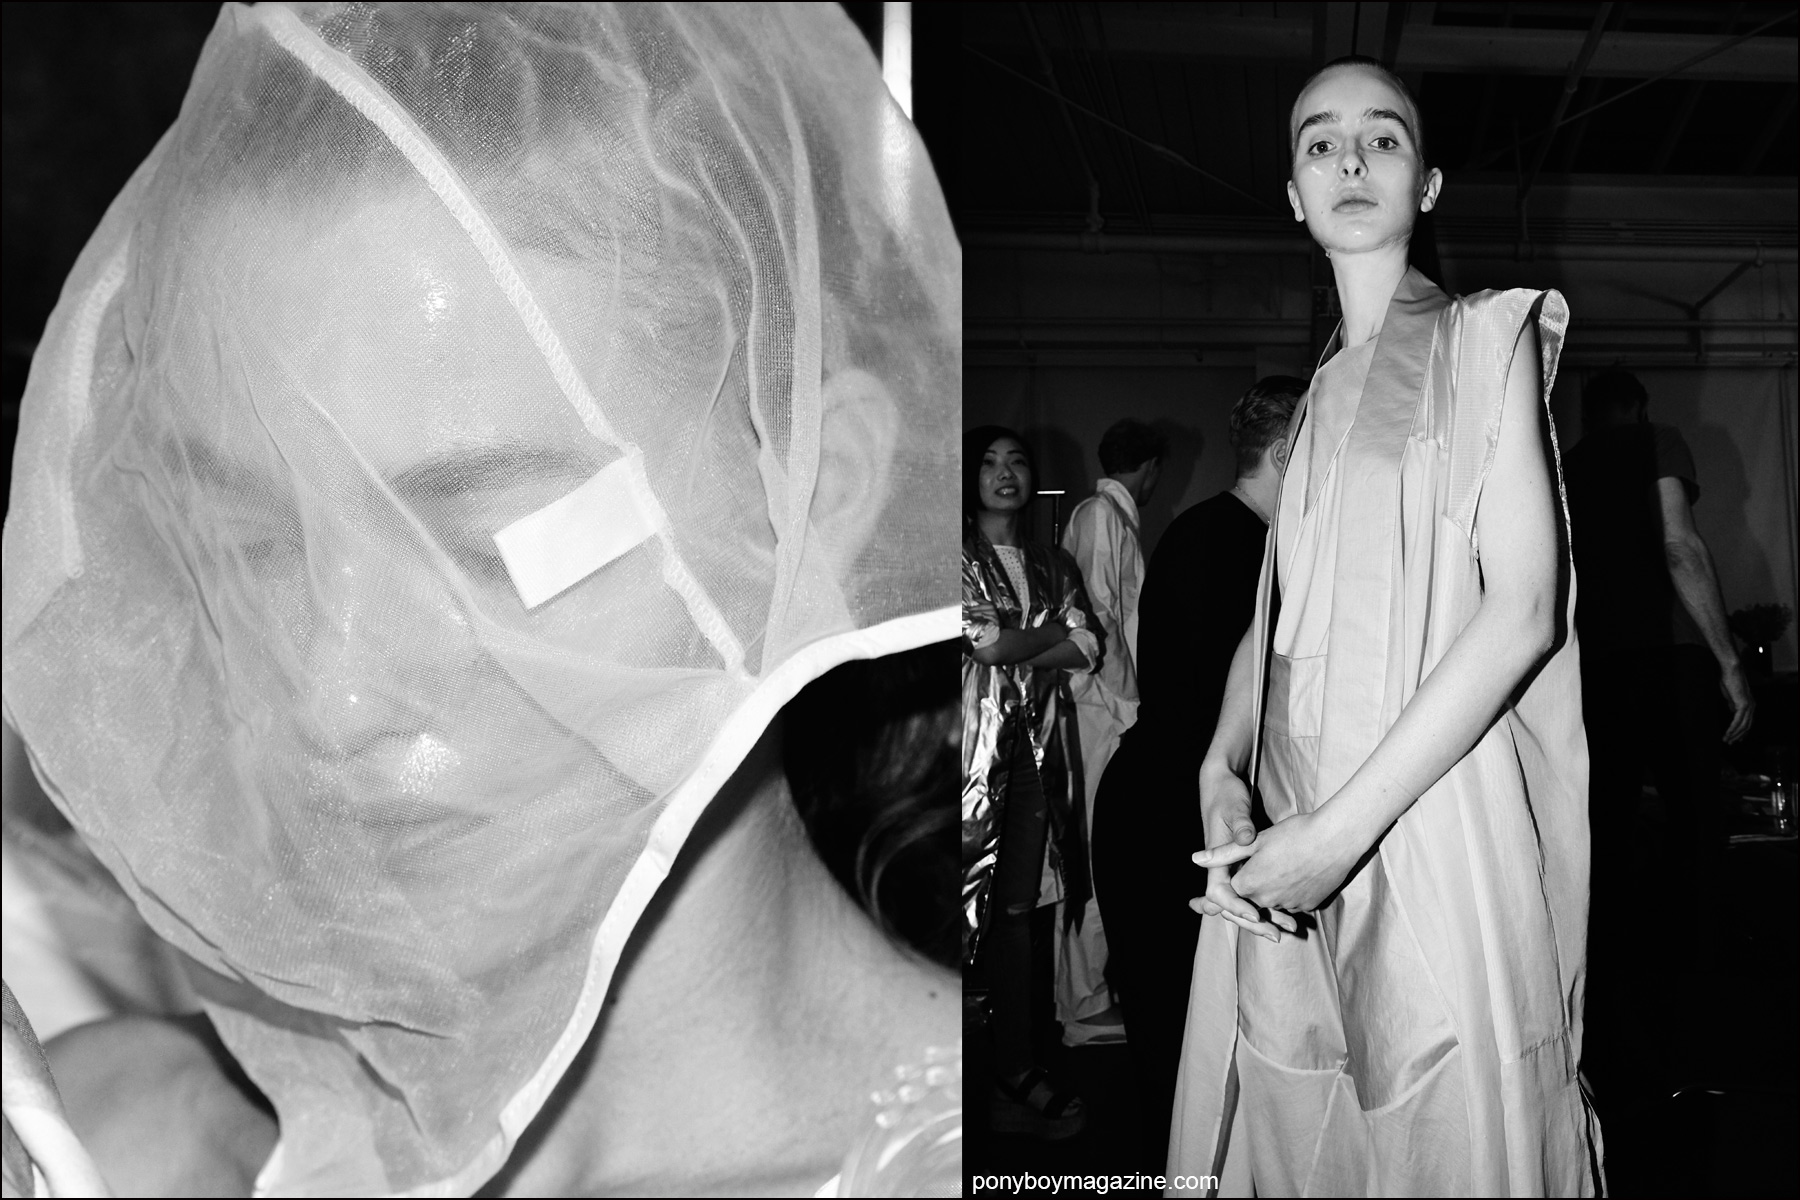 Models photographed backstage dressing at the threeASFOUR S/S16 fashion show. Photography by Alexander Thompson for Ponyboy magazine NY.